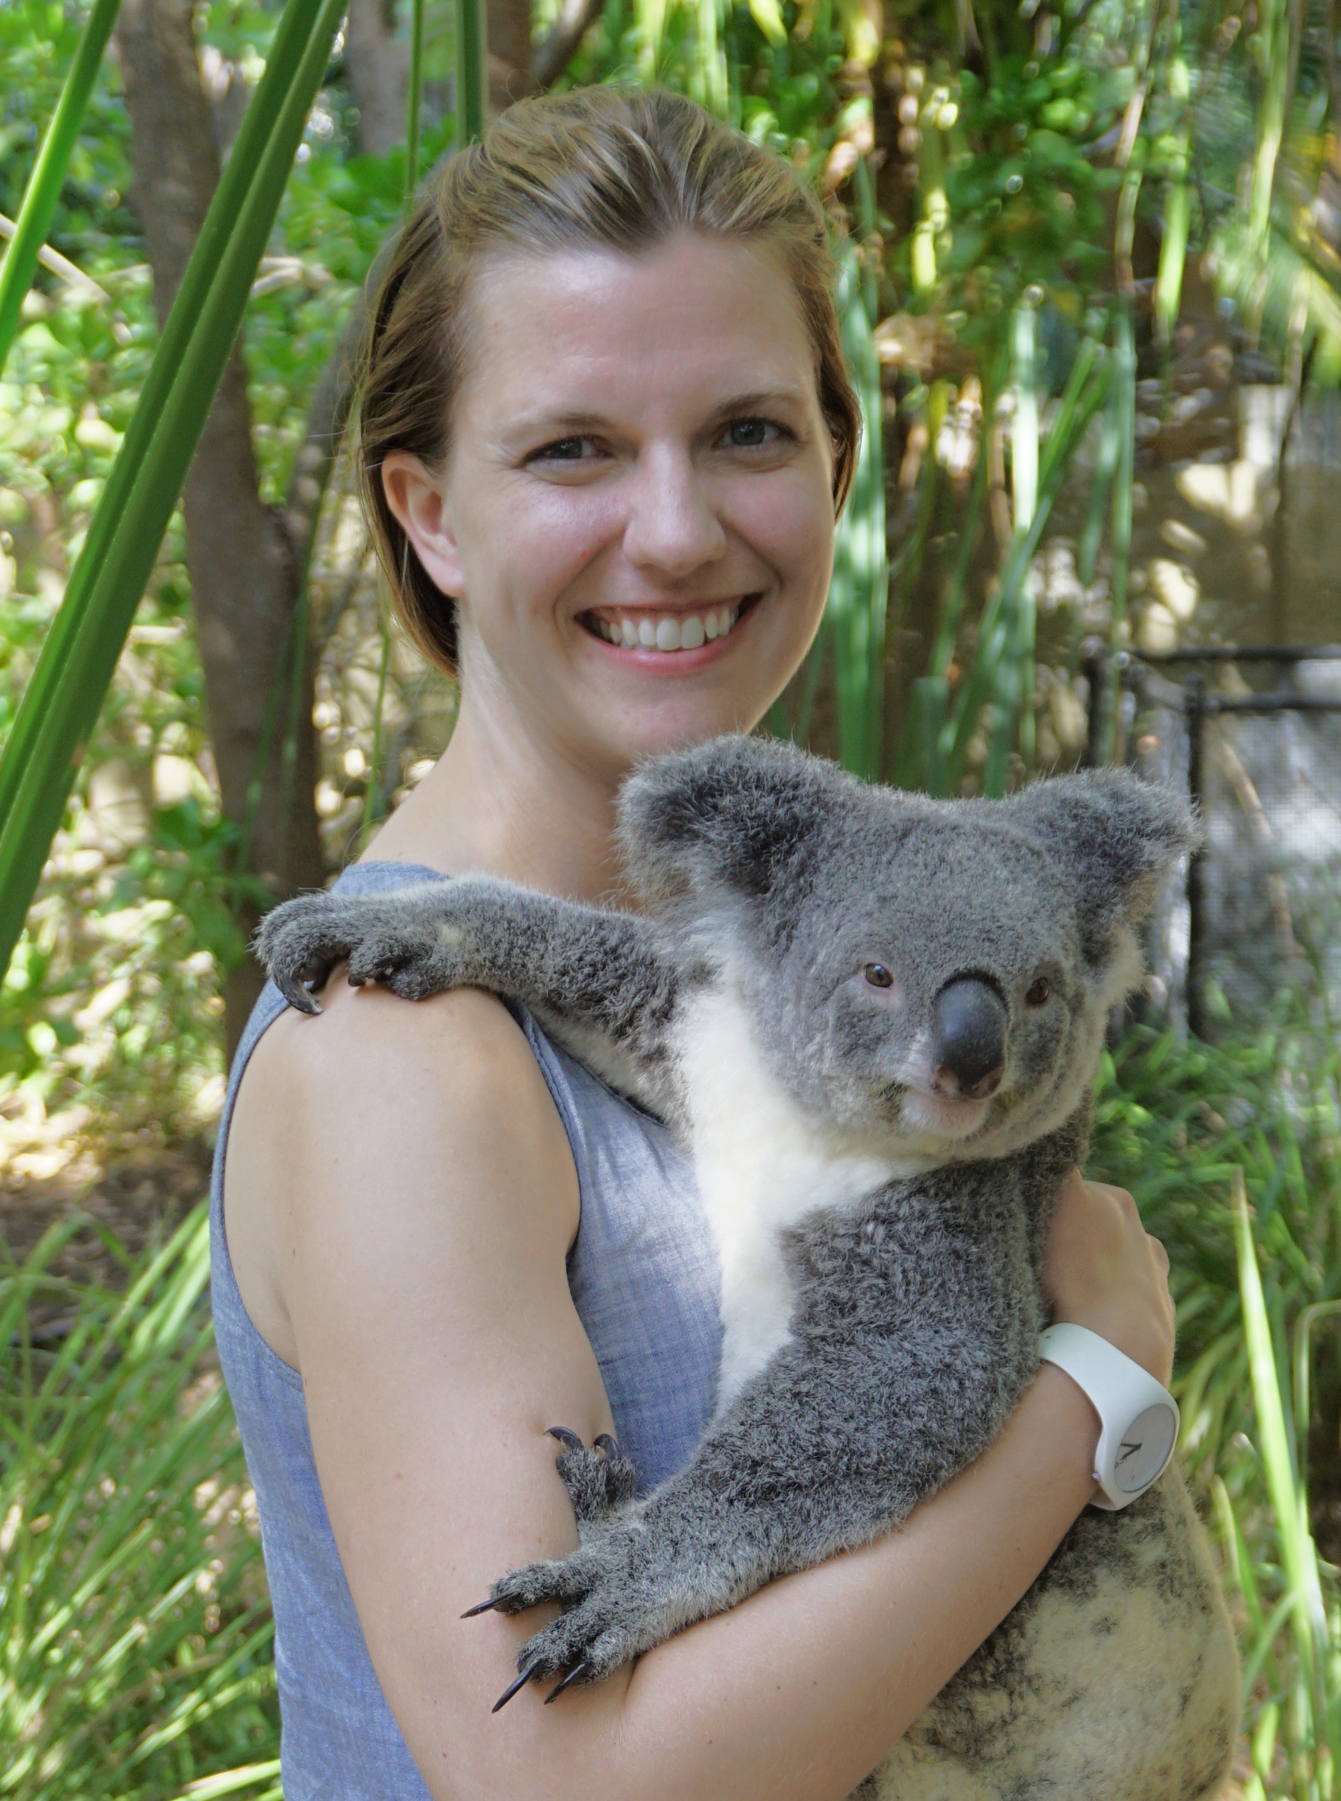 My happy smile conceals a slight fear that the koala might dig those long claws into my skin... thankfully, she did not.